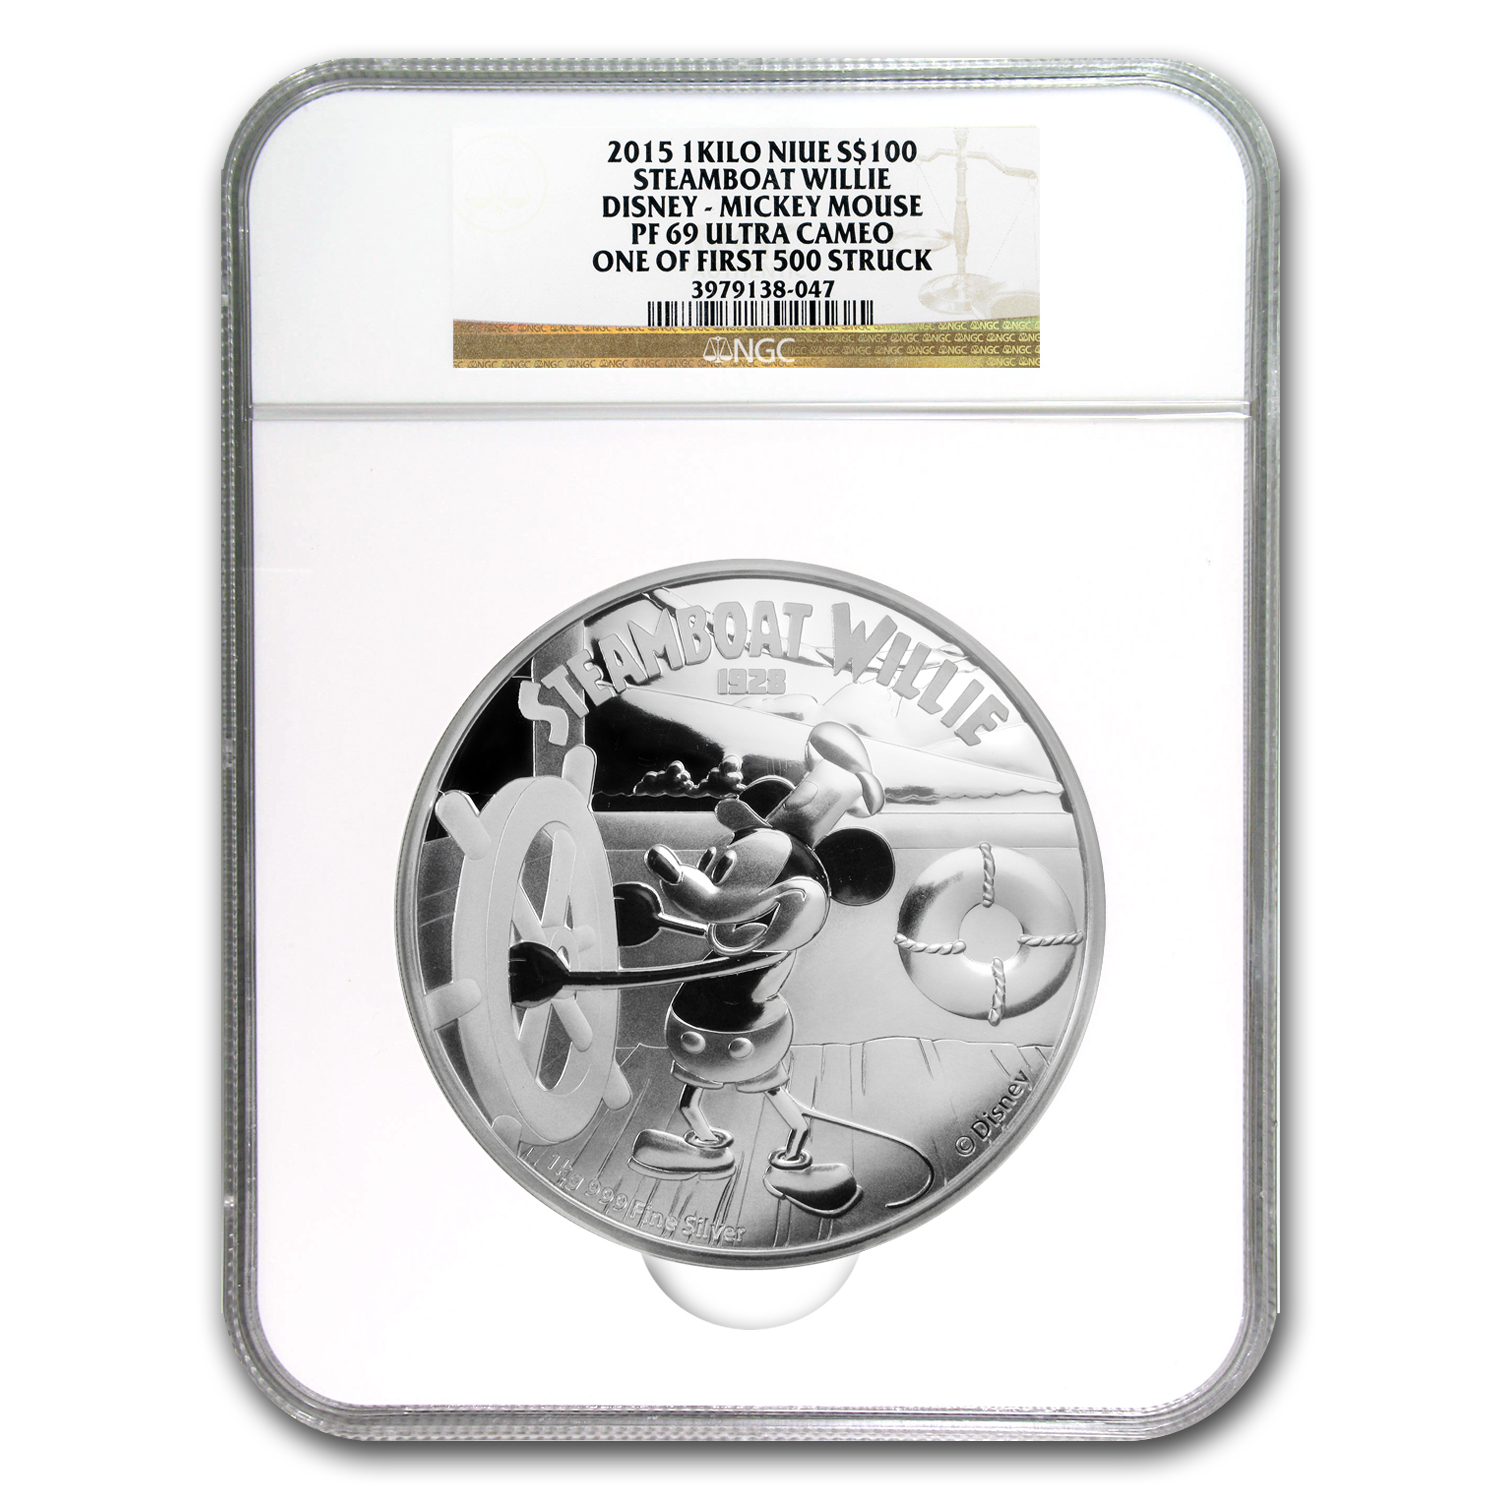 2015 Niue 1 kilo Silver $100 Disney Steamboat Willie PF-69 NGC